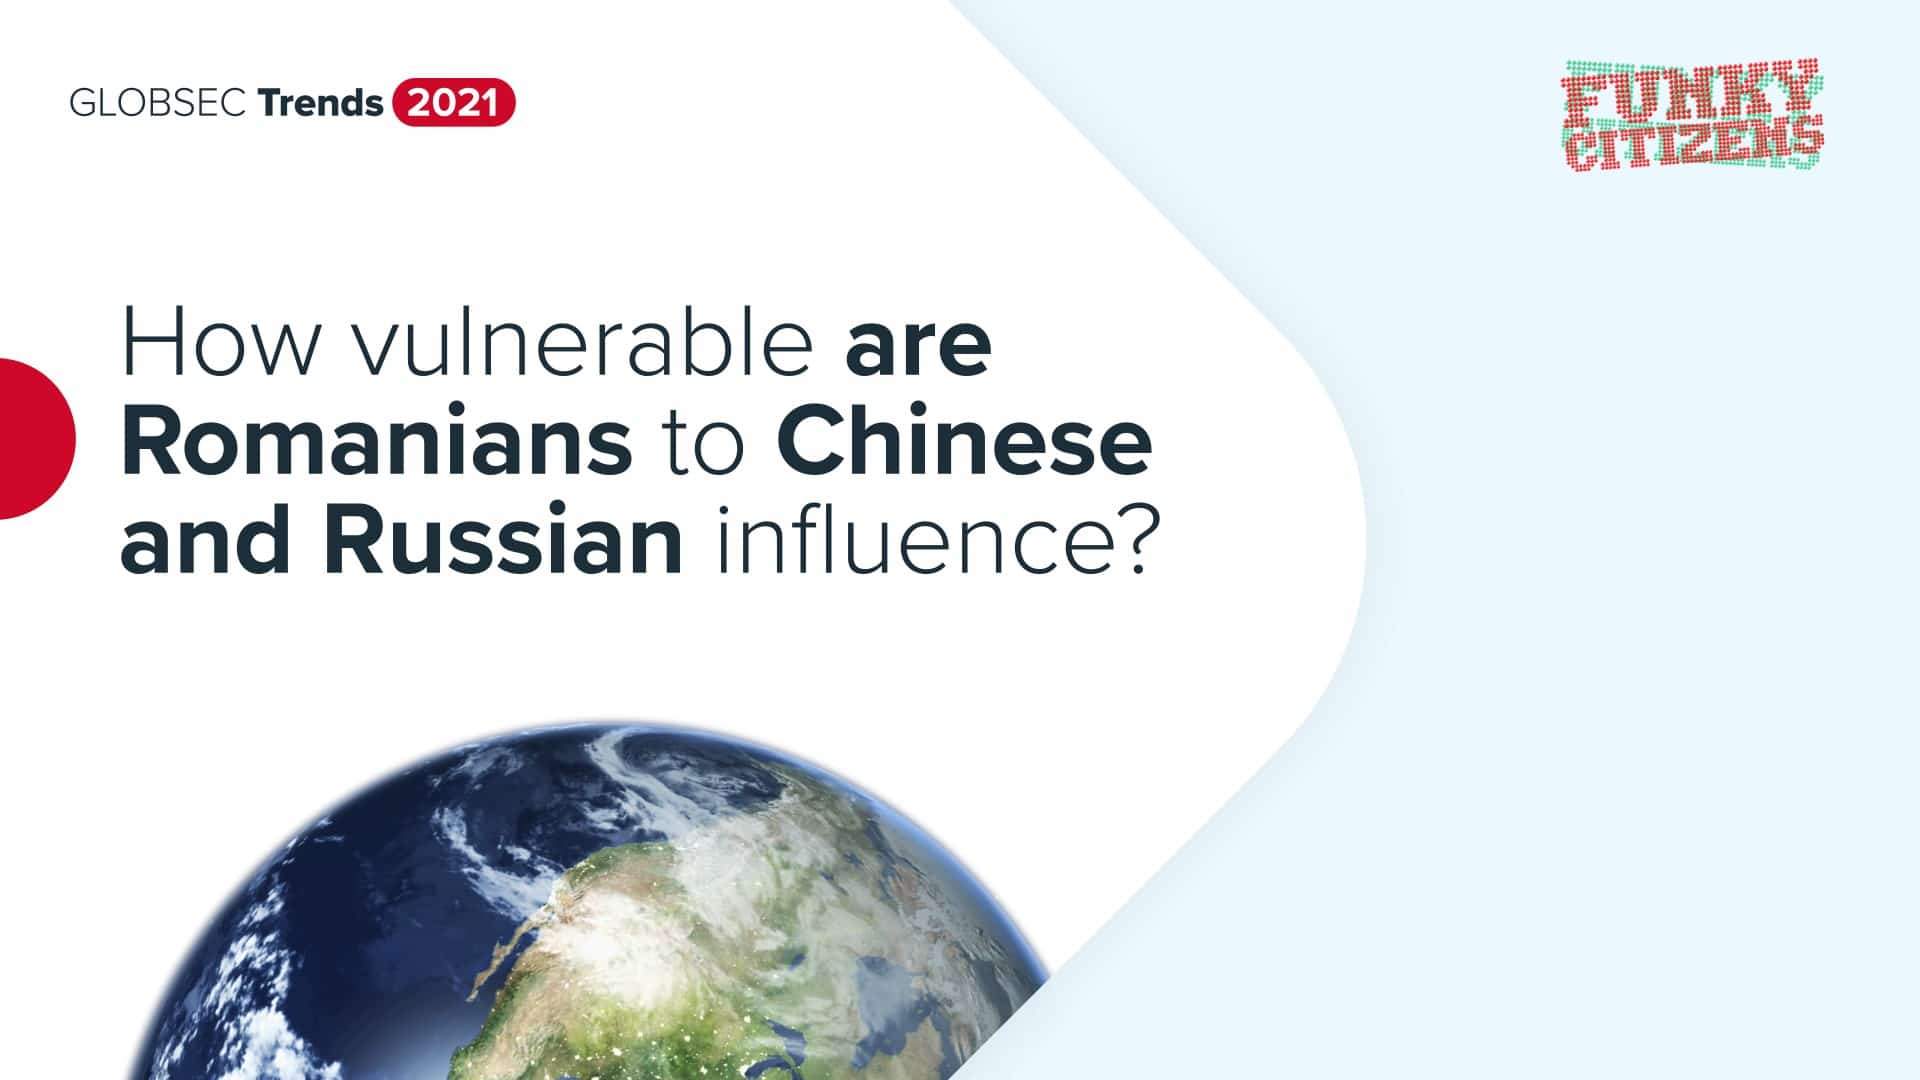 How vulnerable are Romanians to Russian and Chinese influence?